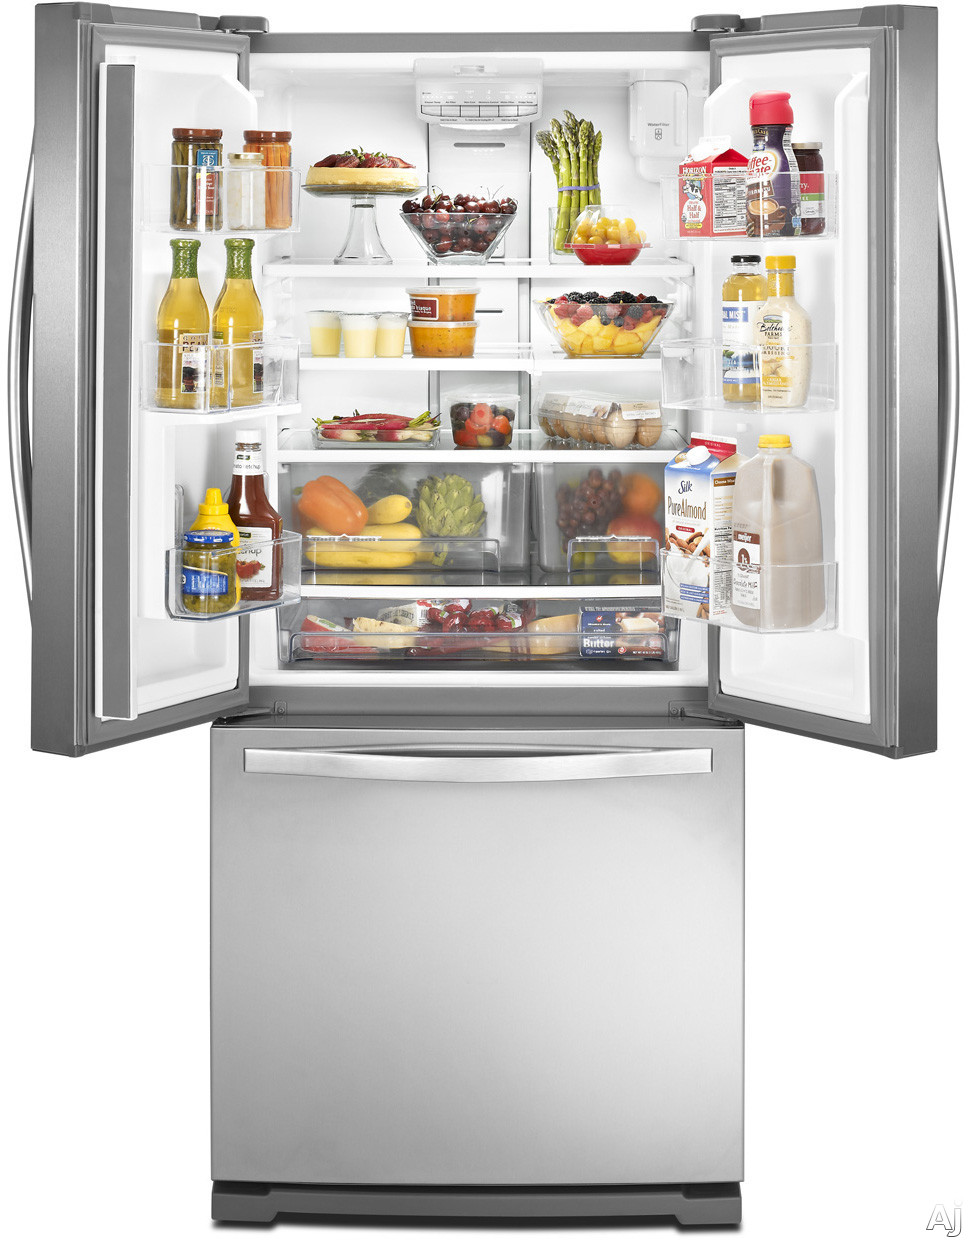 Whirlpool wrf560smyw 19 6 cu ft french door refrigerator for 19 6 cu ft french door refrigerator